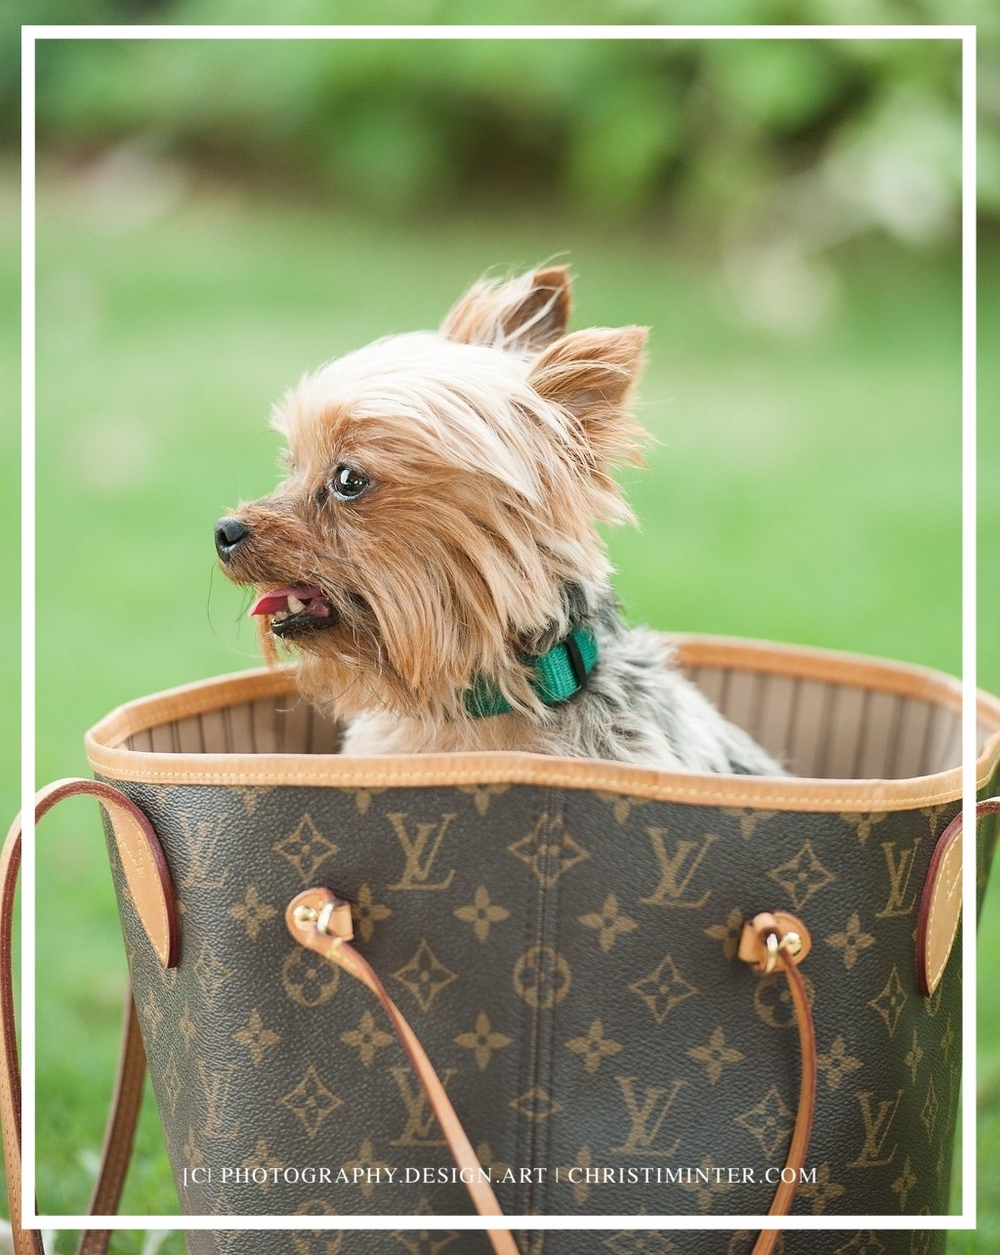 yorkie+dogs+christiminter.com+louis+vuitton+photography+design+vibrant+life+photographer